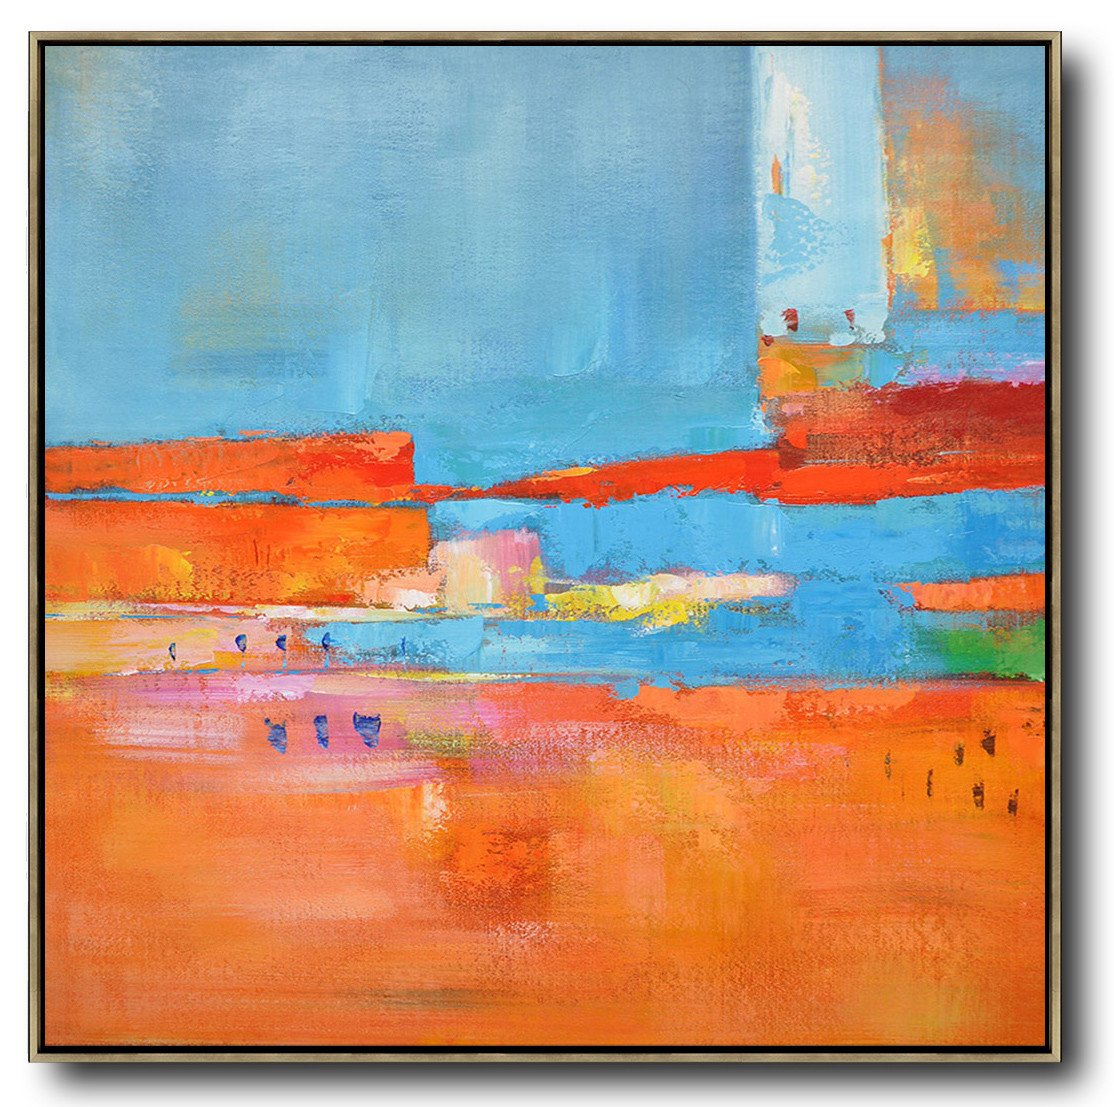 Large Contemporary Art Acrylic Painting,Oversized Contemporary Art,Abstract Painting On Canvas,Red,Blue,Orange,Yellow,Pink.etc